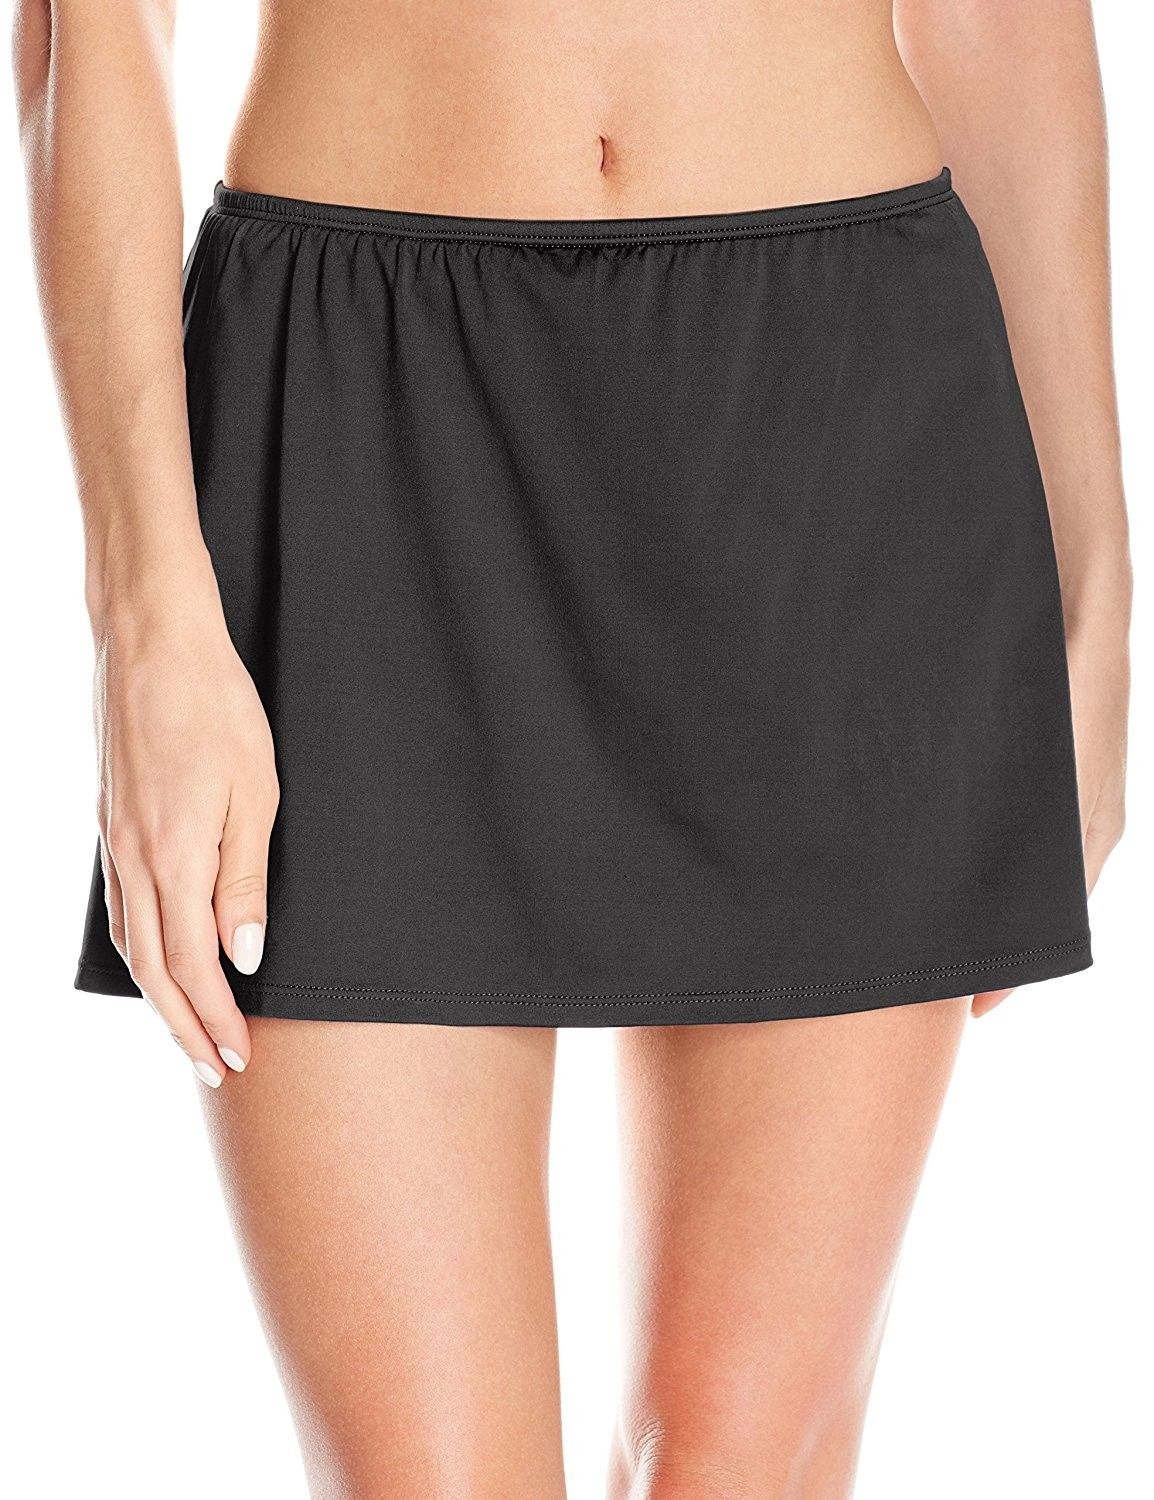 43ed34584f99c Women's Solid Skirted Bikini Bottom - Black - CW12MZUDPEH,Women's Clothing,  Swimsuits & Cover Ups, Tankinis #women #clothing #fashion #style #sexy  #outfits ...